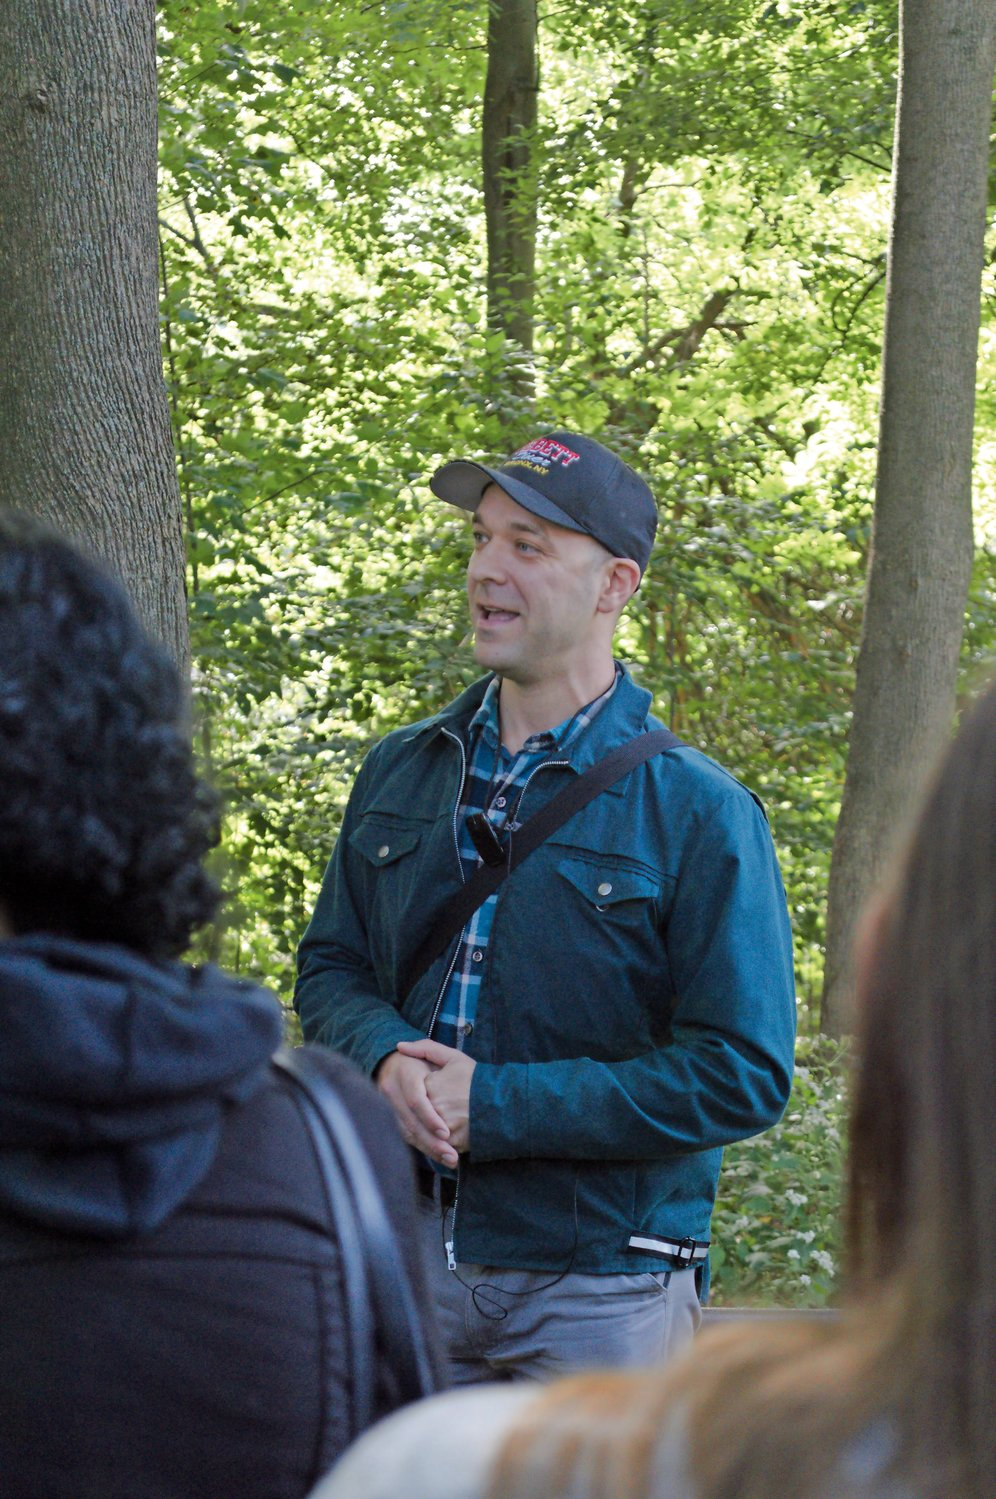 Nick Dembowski, new president of the Kingsbridge Historical Society, talks about an overgrown burial site in Van Cortlandt Park during a tour of the park on Oct. 14.